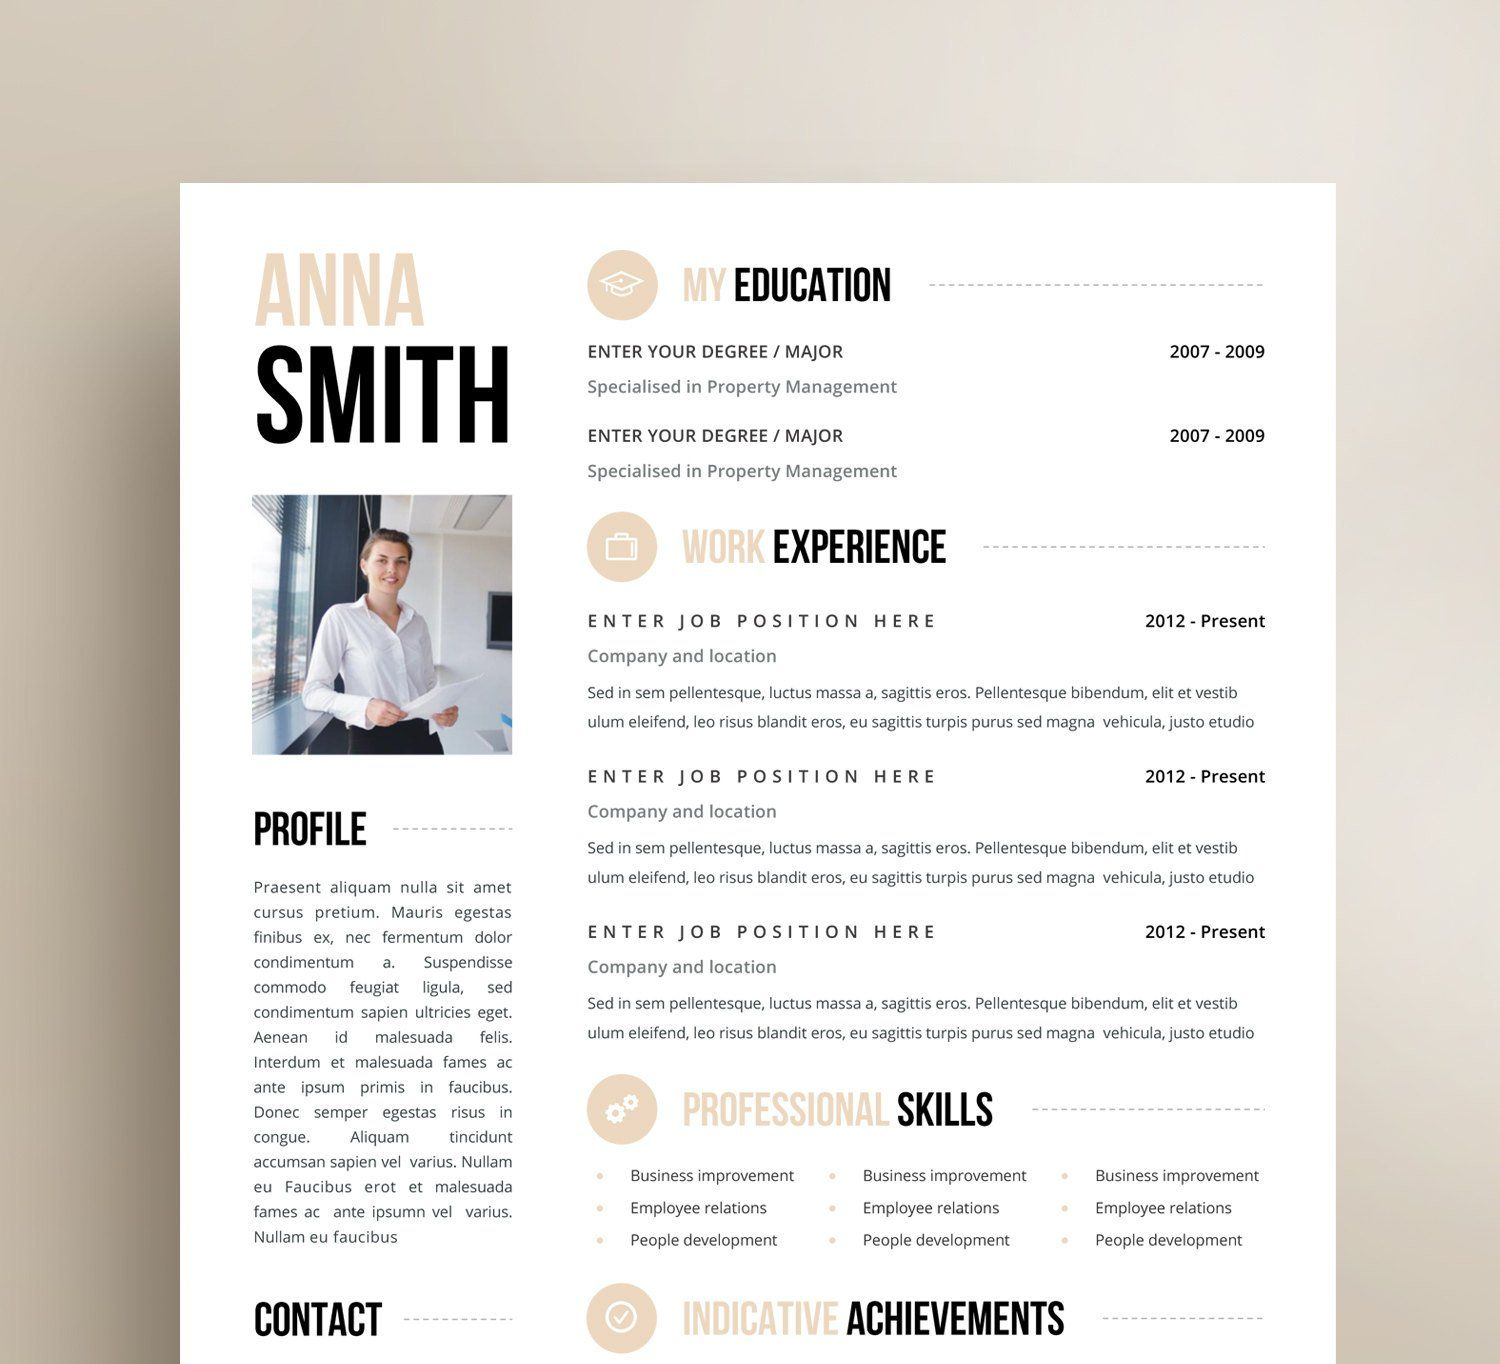 Professional Resume Template Clean Modern Resume Template 1 2 Page Resume Template Instant Download Resume Cv Template For Word Resume Template Professional Resume Template Resume Templates